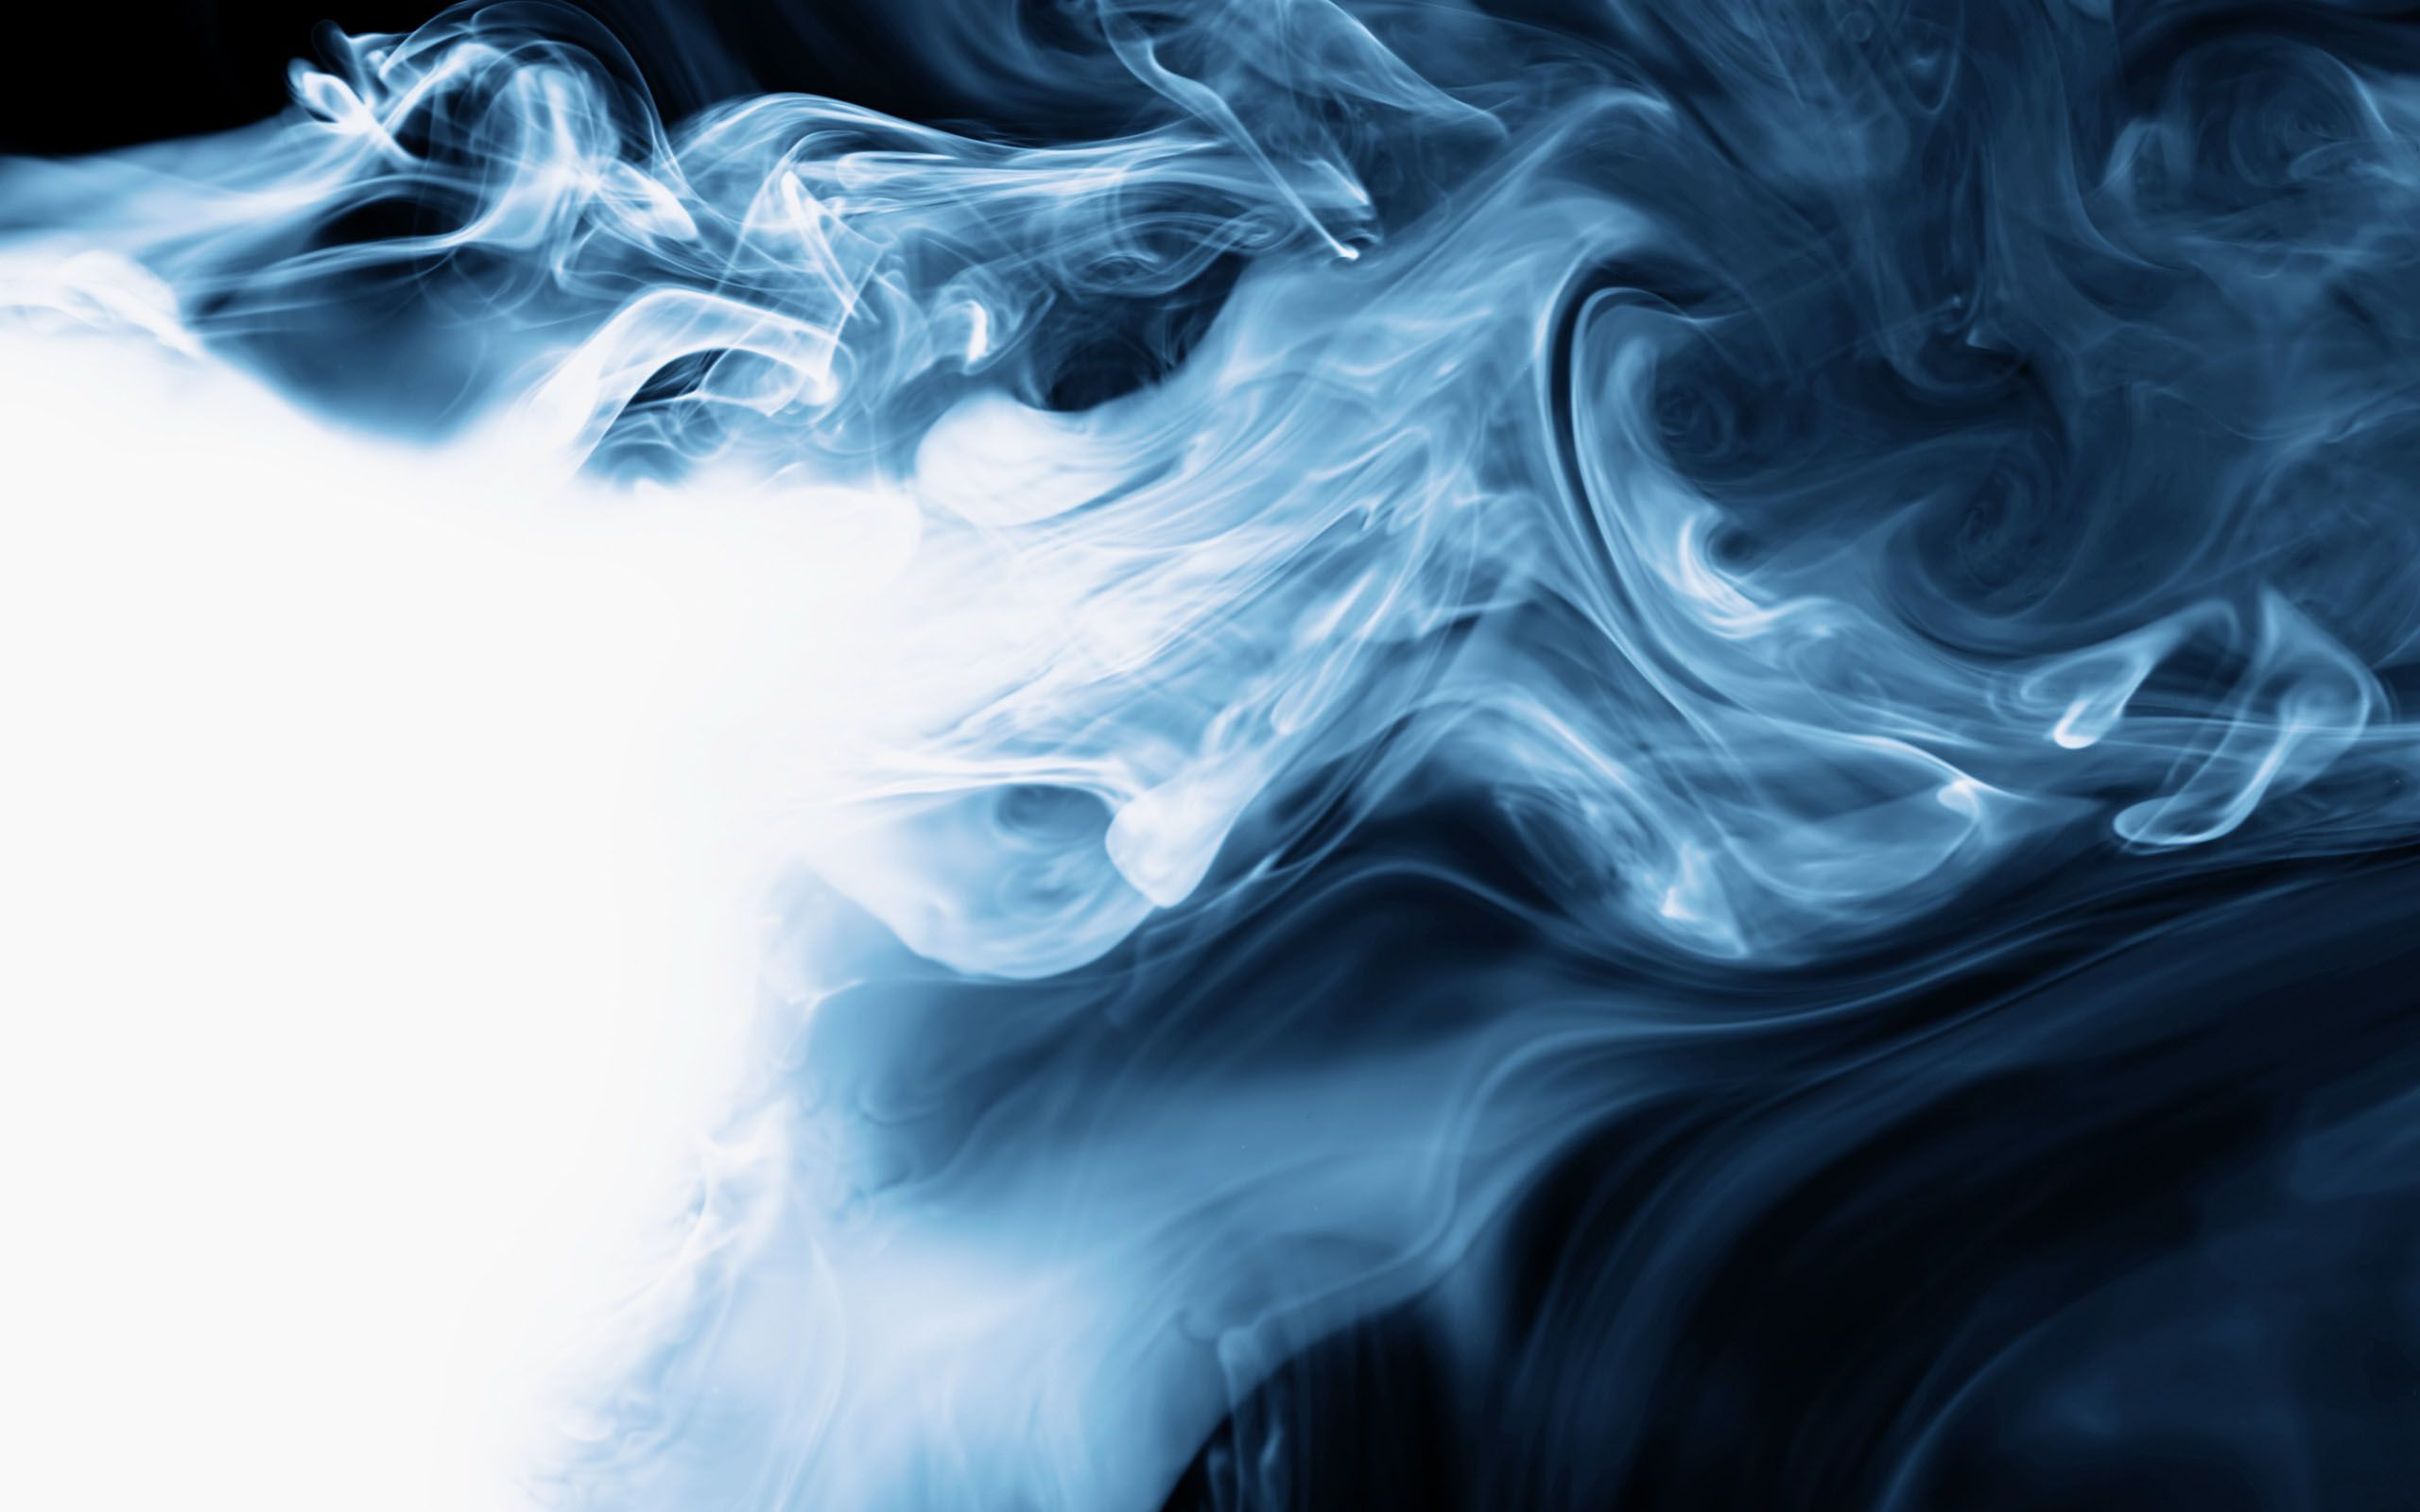 Wallpaper Gallery: Smoke Wallpapers Images Photos Pictures Backgrounds